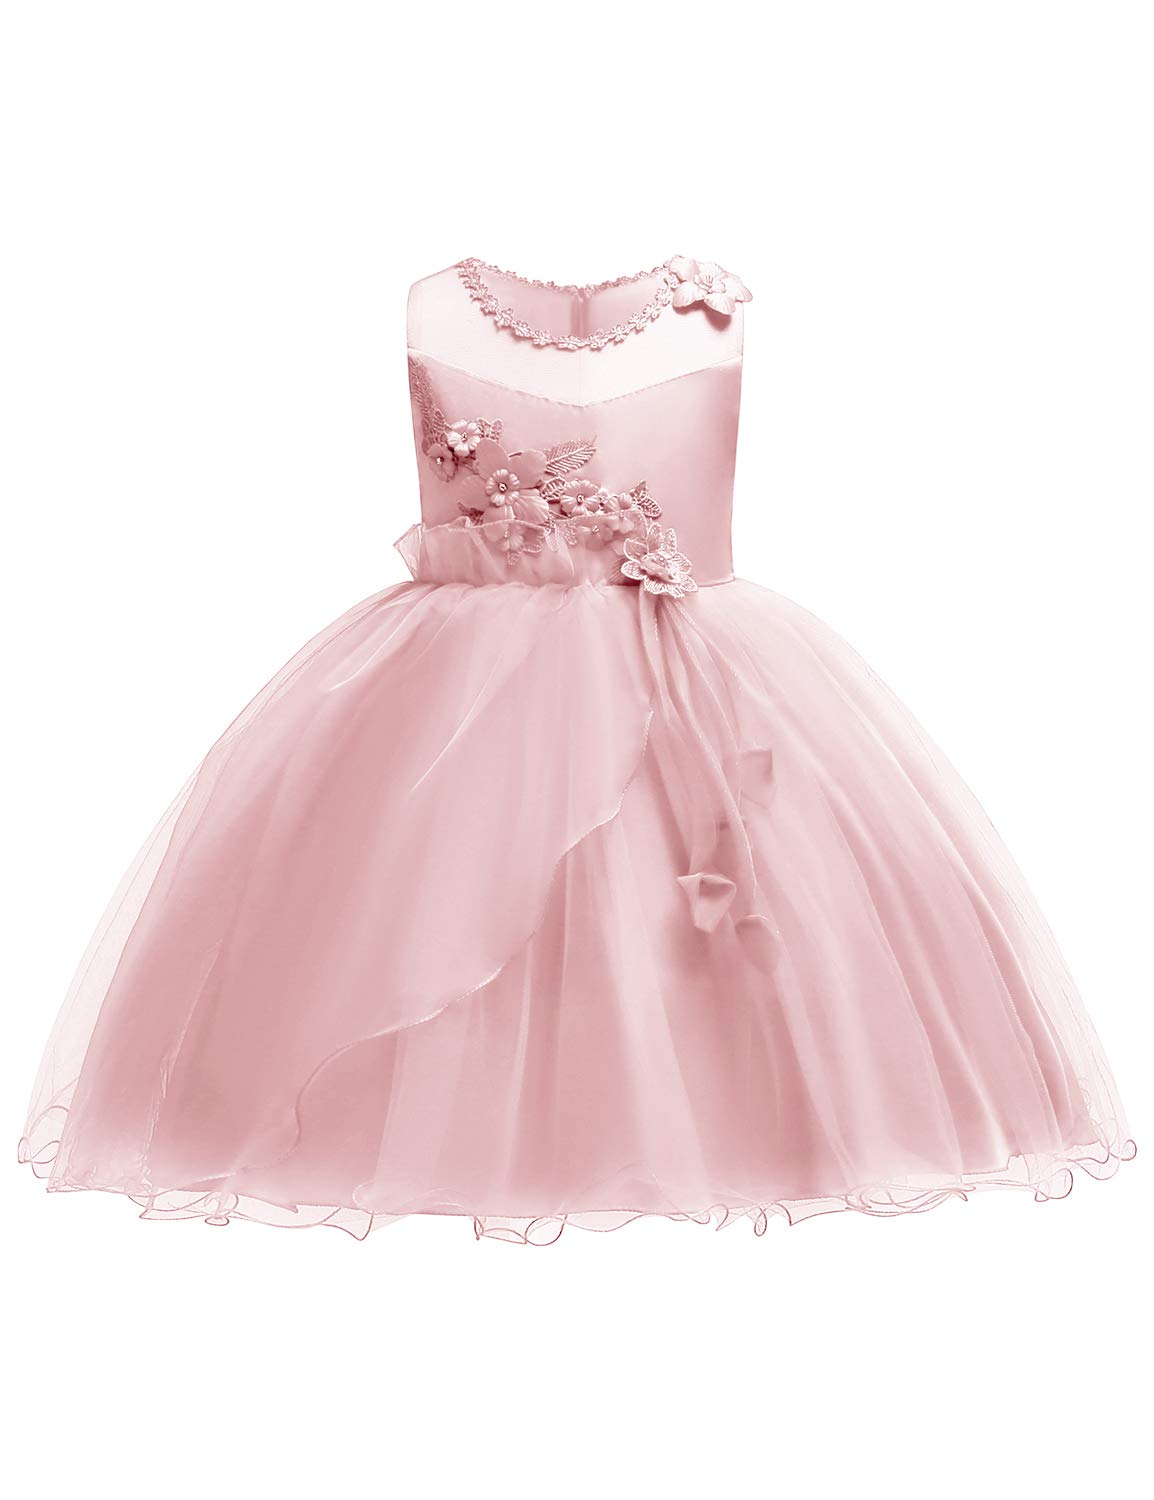 JOYMOM Girls' Special Occasion Dresses, Teens Sleeveless Embellished Neckline 3D Embroidery Pageant Dress Flower Girl Mesh Ball Gown Weddings Pink Size (140) 8-9 Years